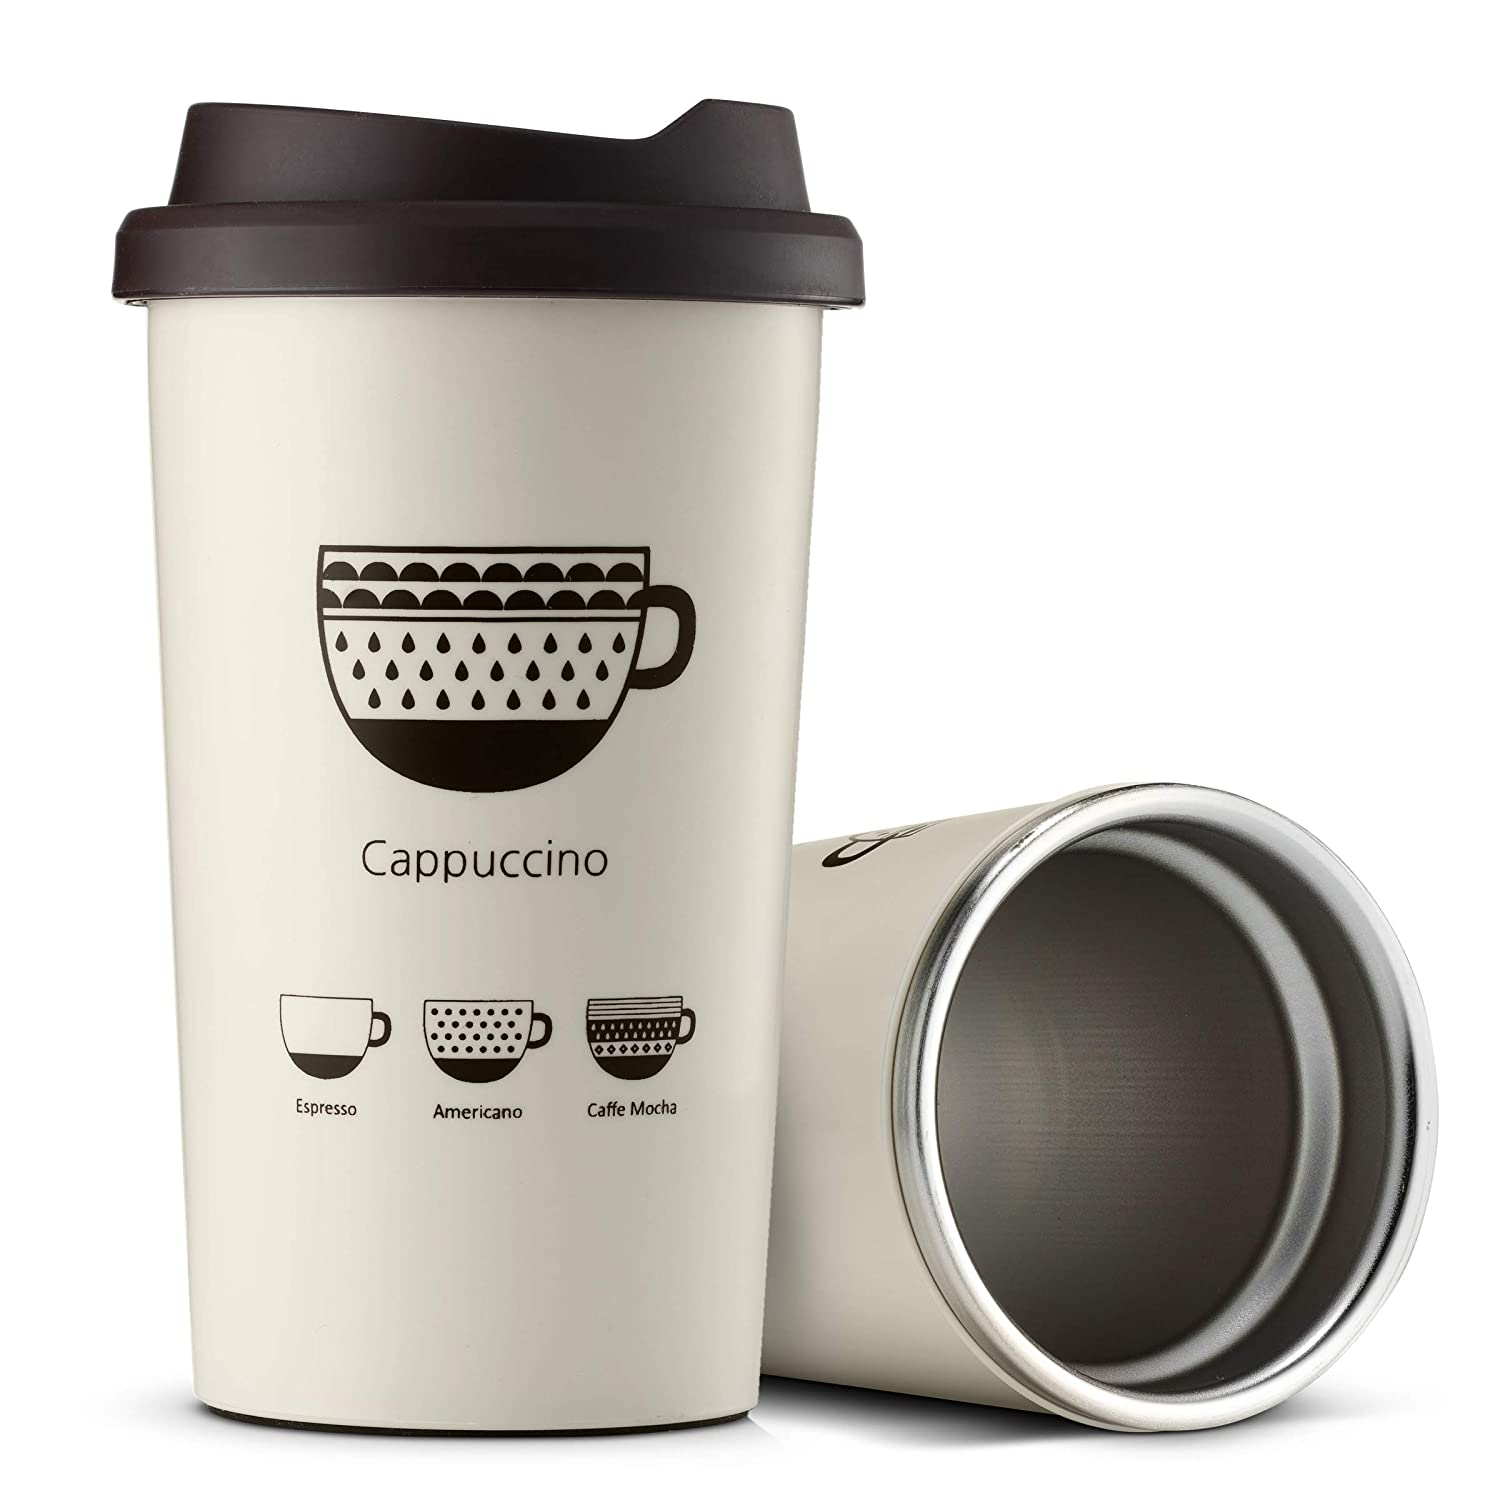 d404f9b5981e JVR Stainless Steel Reusable Coffee Cup | Double Wall Vacuum Insulated  Travel Coffee Mug with Lid | 13 oz (380 ml) Insulated Cup Perfect For Tea &  Coffee ...